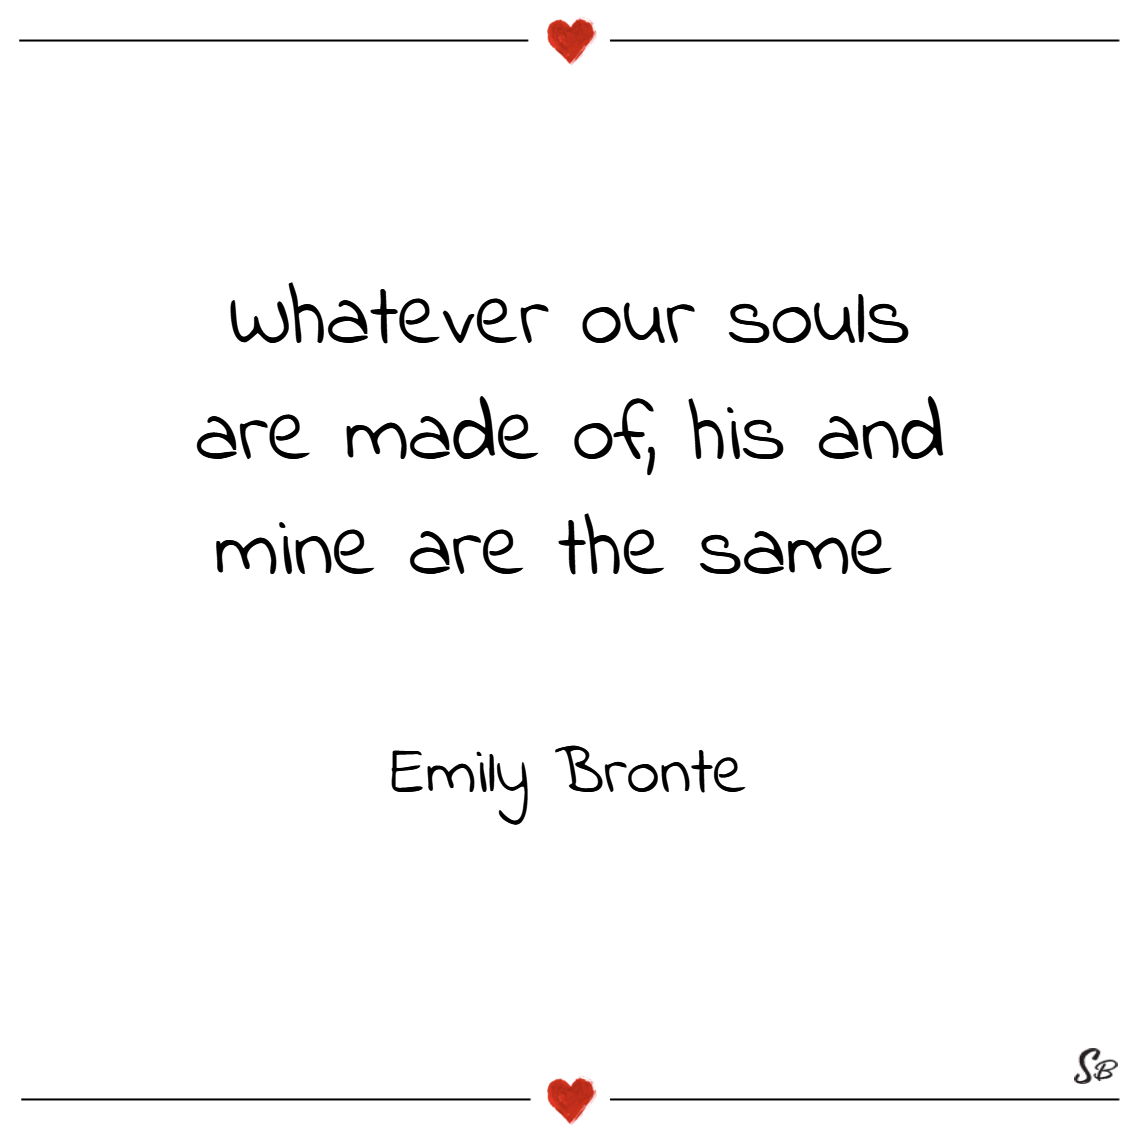 Whatever our souls are made of, his and mine are t